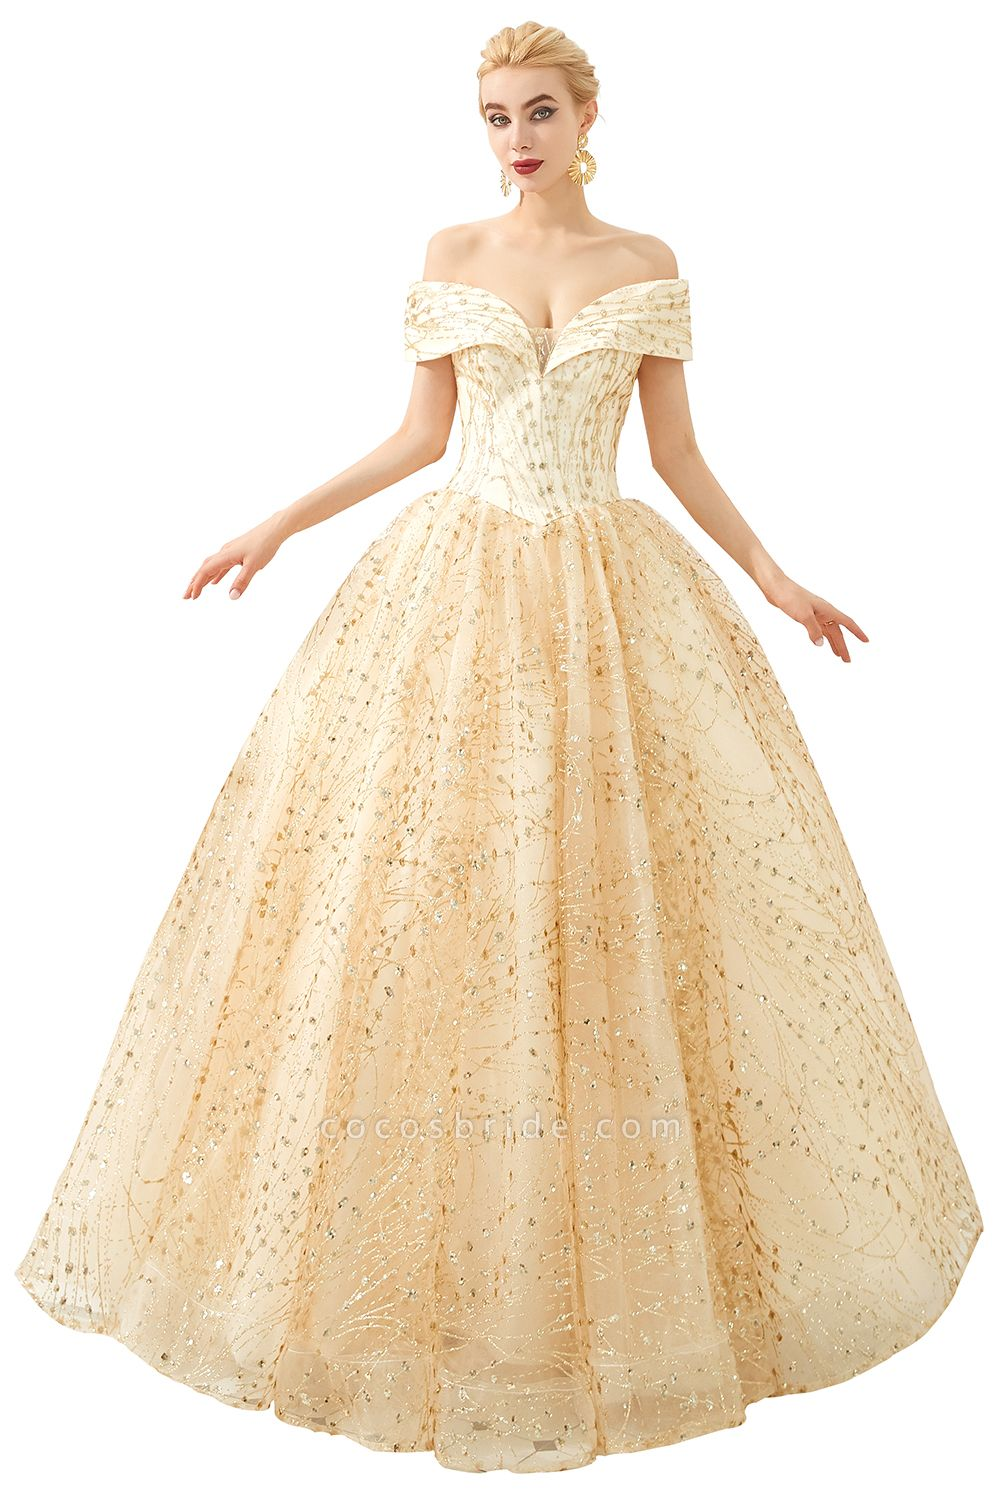 Attractive Off-the-shoulder Tulle Princess Prom Dress